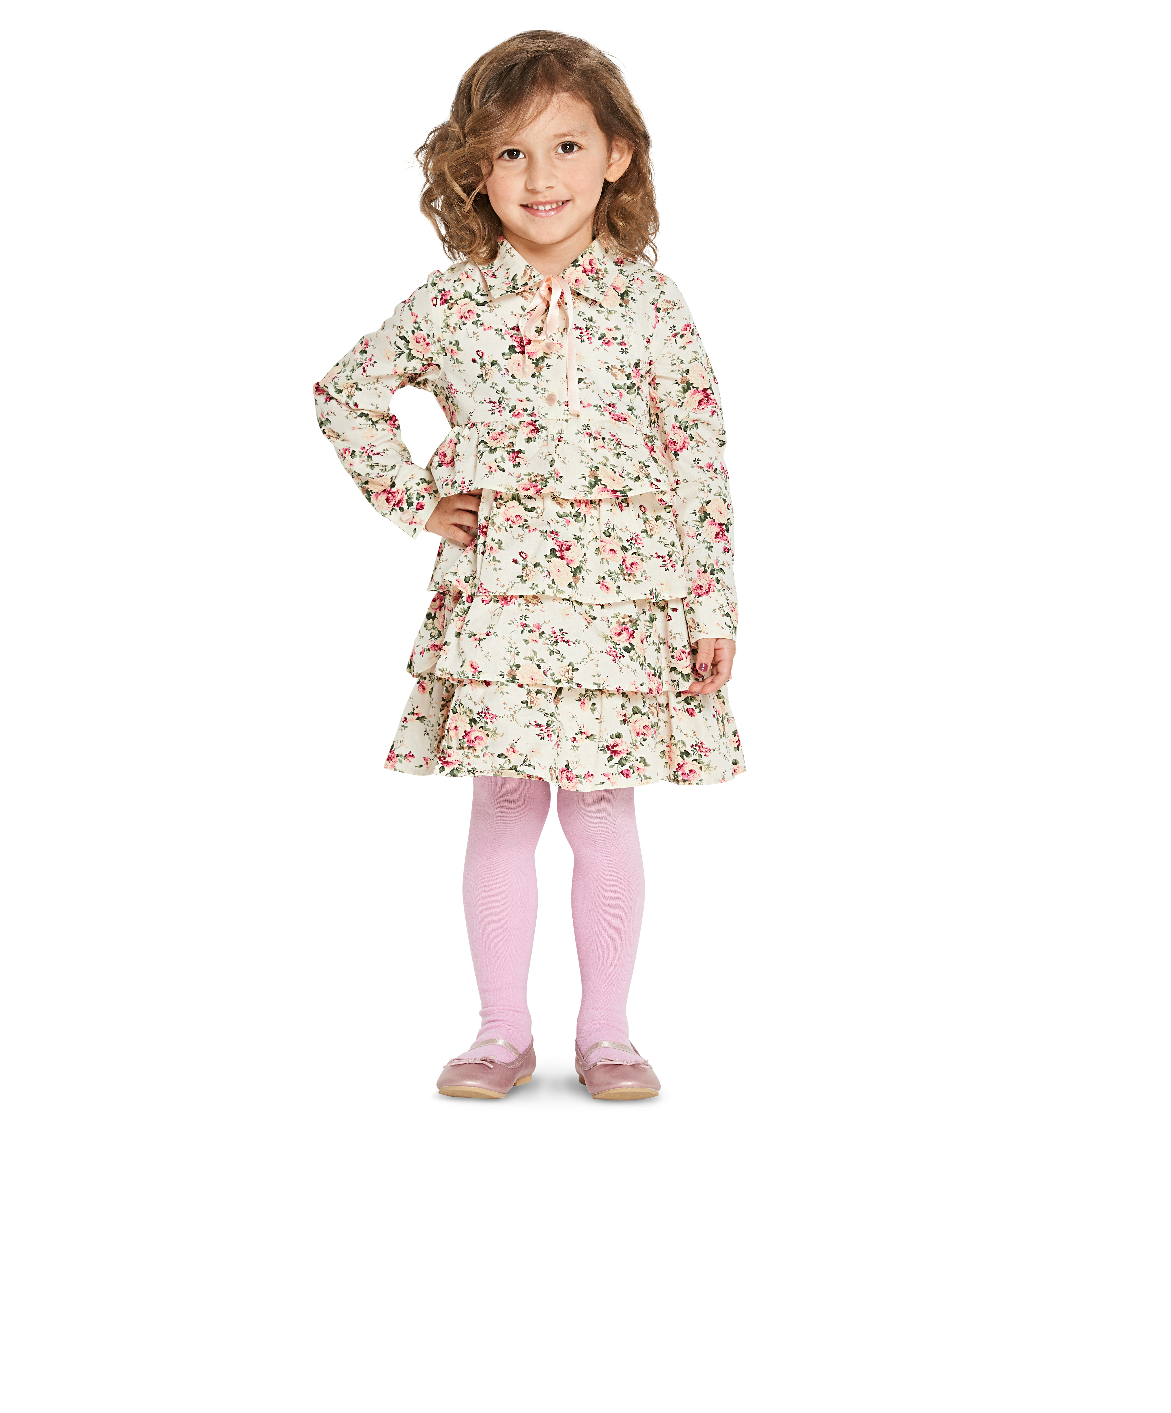 BD9332 Child's Dress pattern